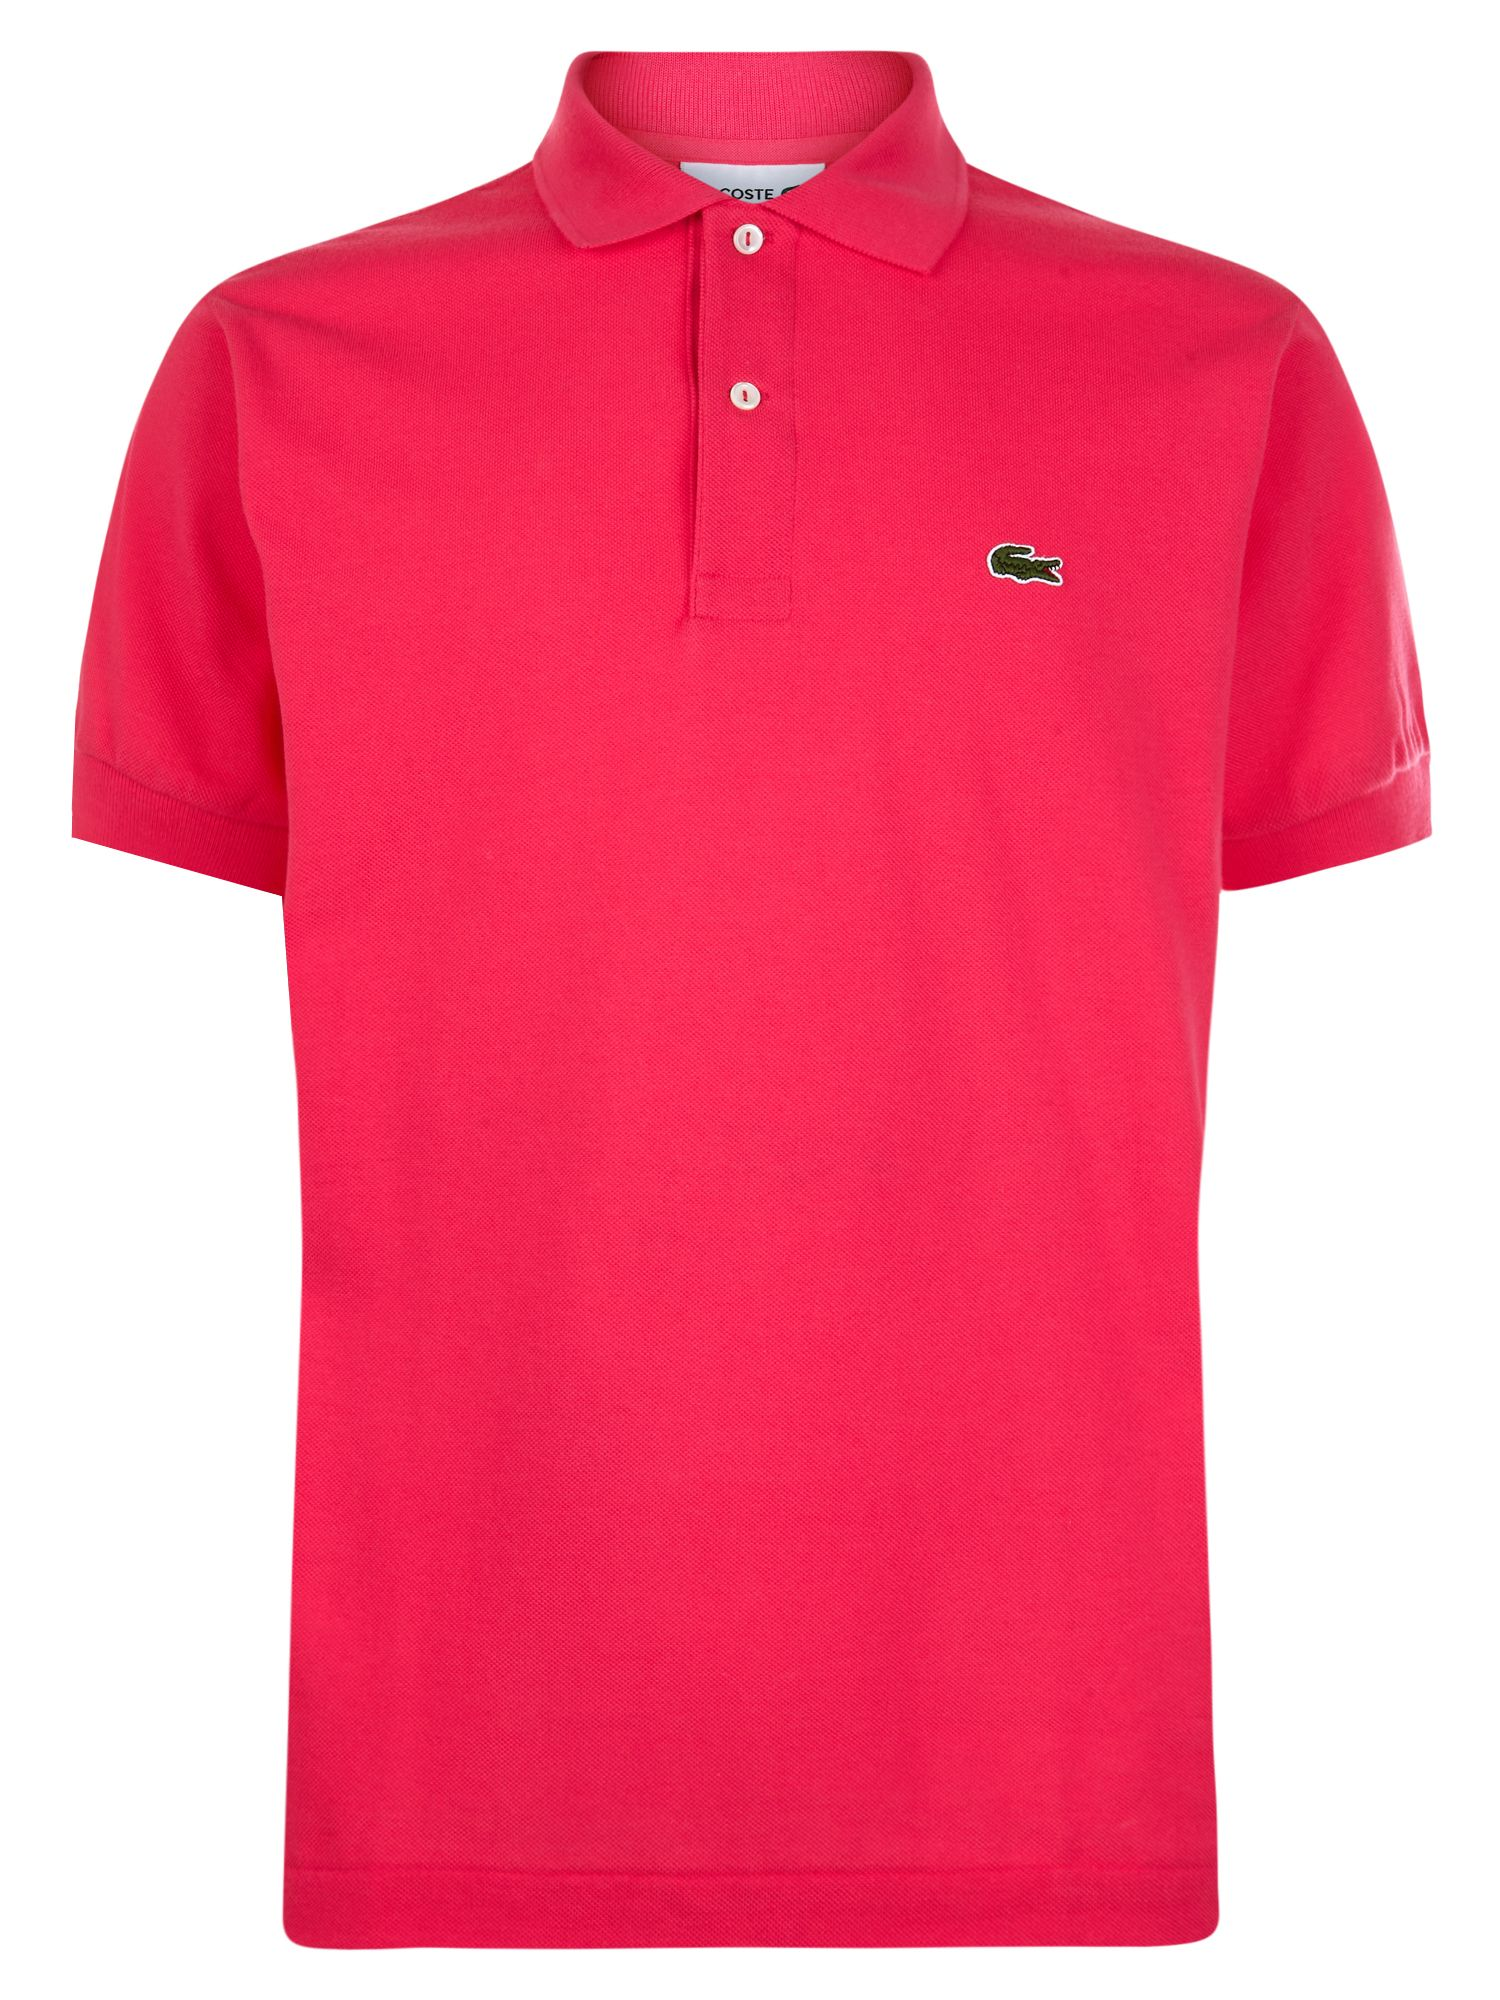 Buy cheap lacoste polo shirts compare men 39 s tops prices for Discount lacoste mens polo shirts